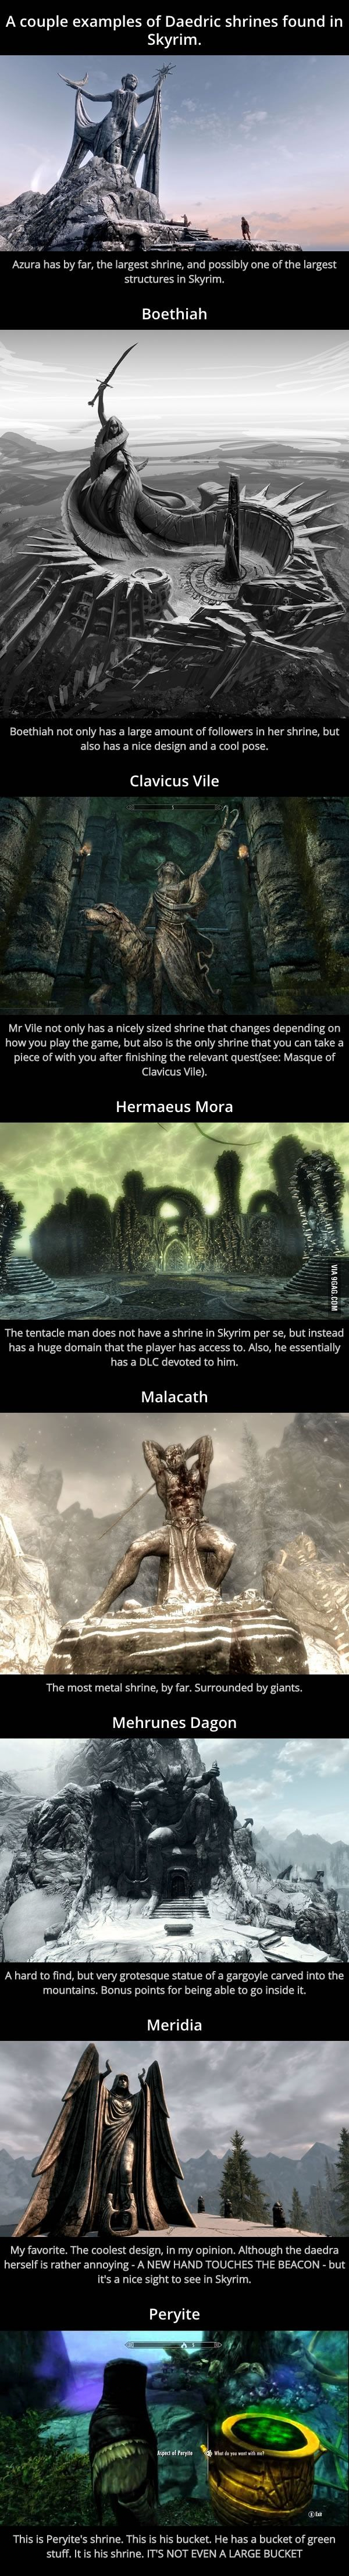 Why Peryite is the Worst Daedric Prince in Skyrim: Shrine Analysis - // ...Yeah I'm gonna agree with this one.